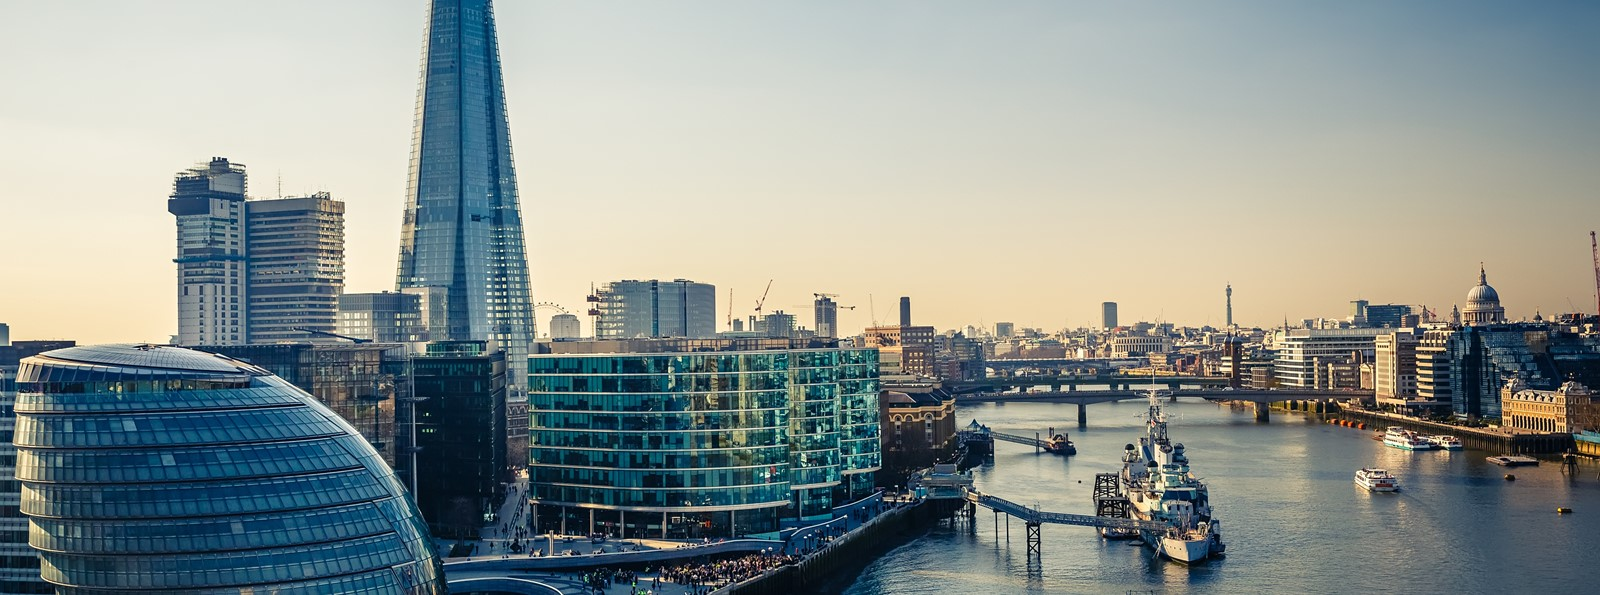 The View From The Shard partners with The AOK Events Group